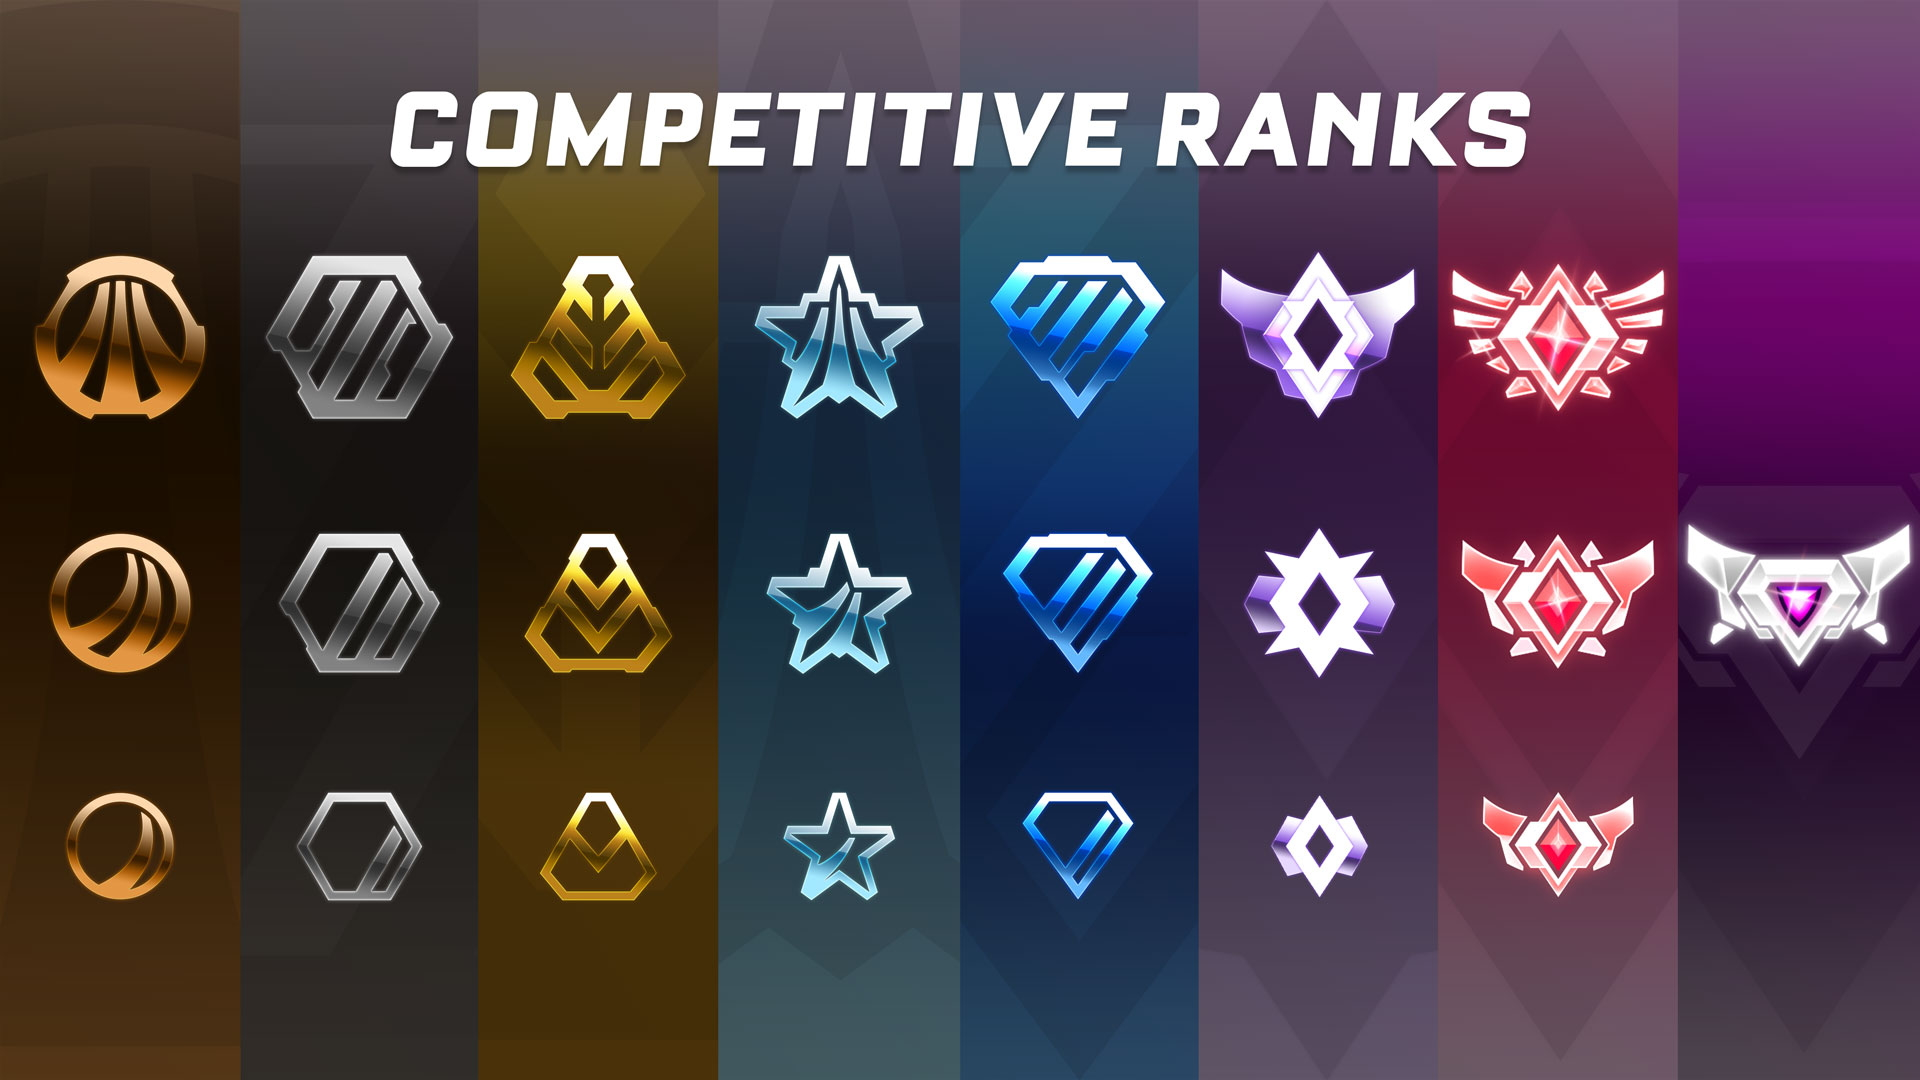 All competitive Ranks in Rocket League have their own distinct icon.